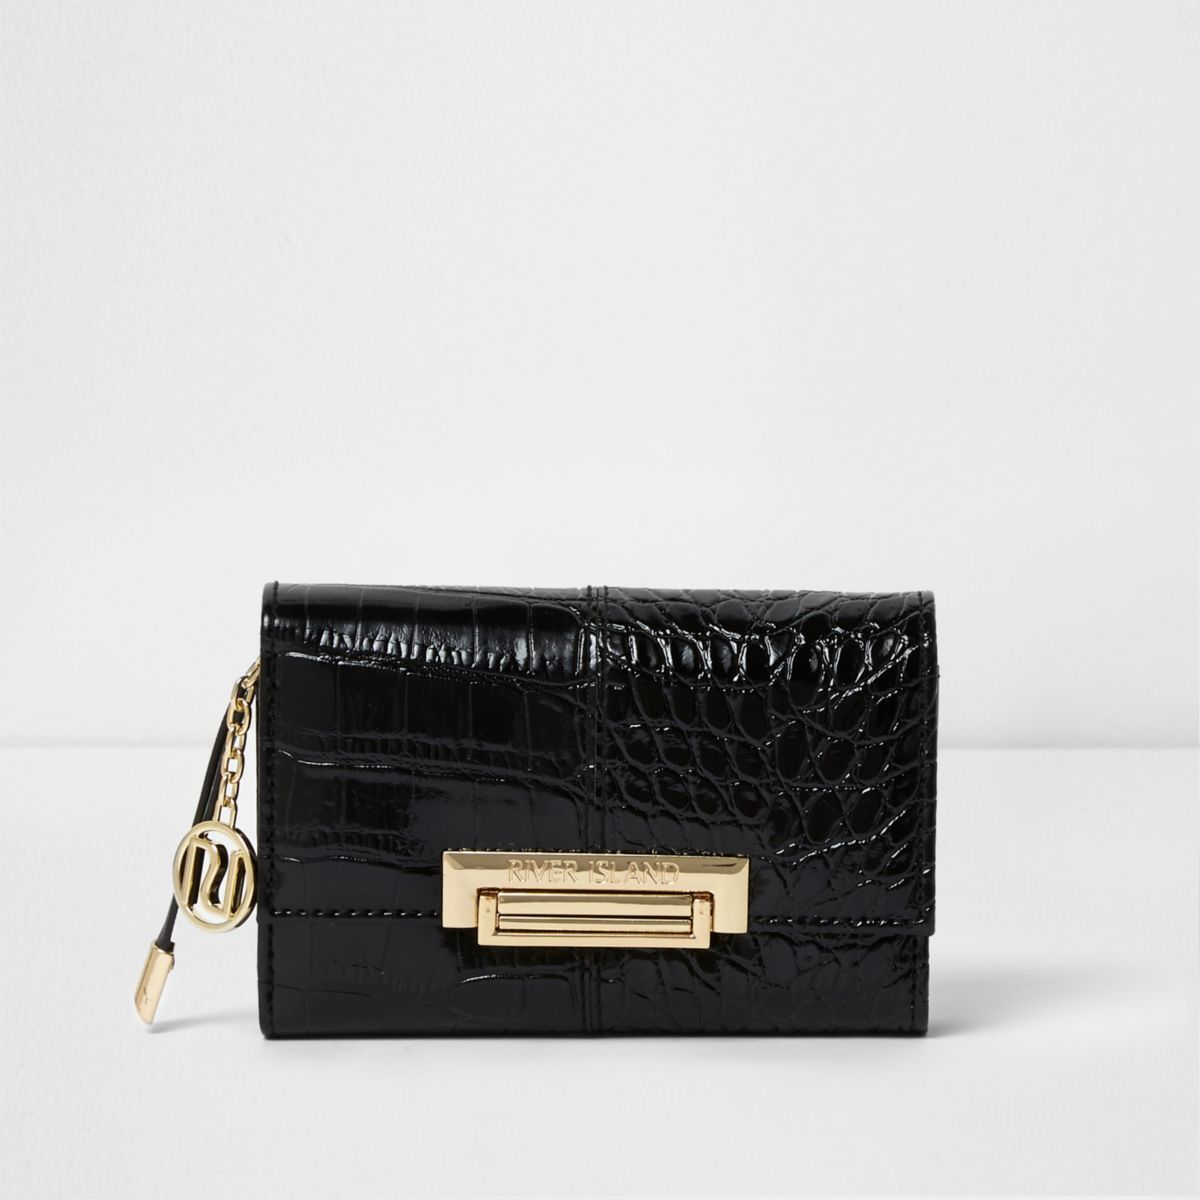 Black mini croc embossed lock front purse